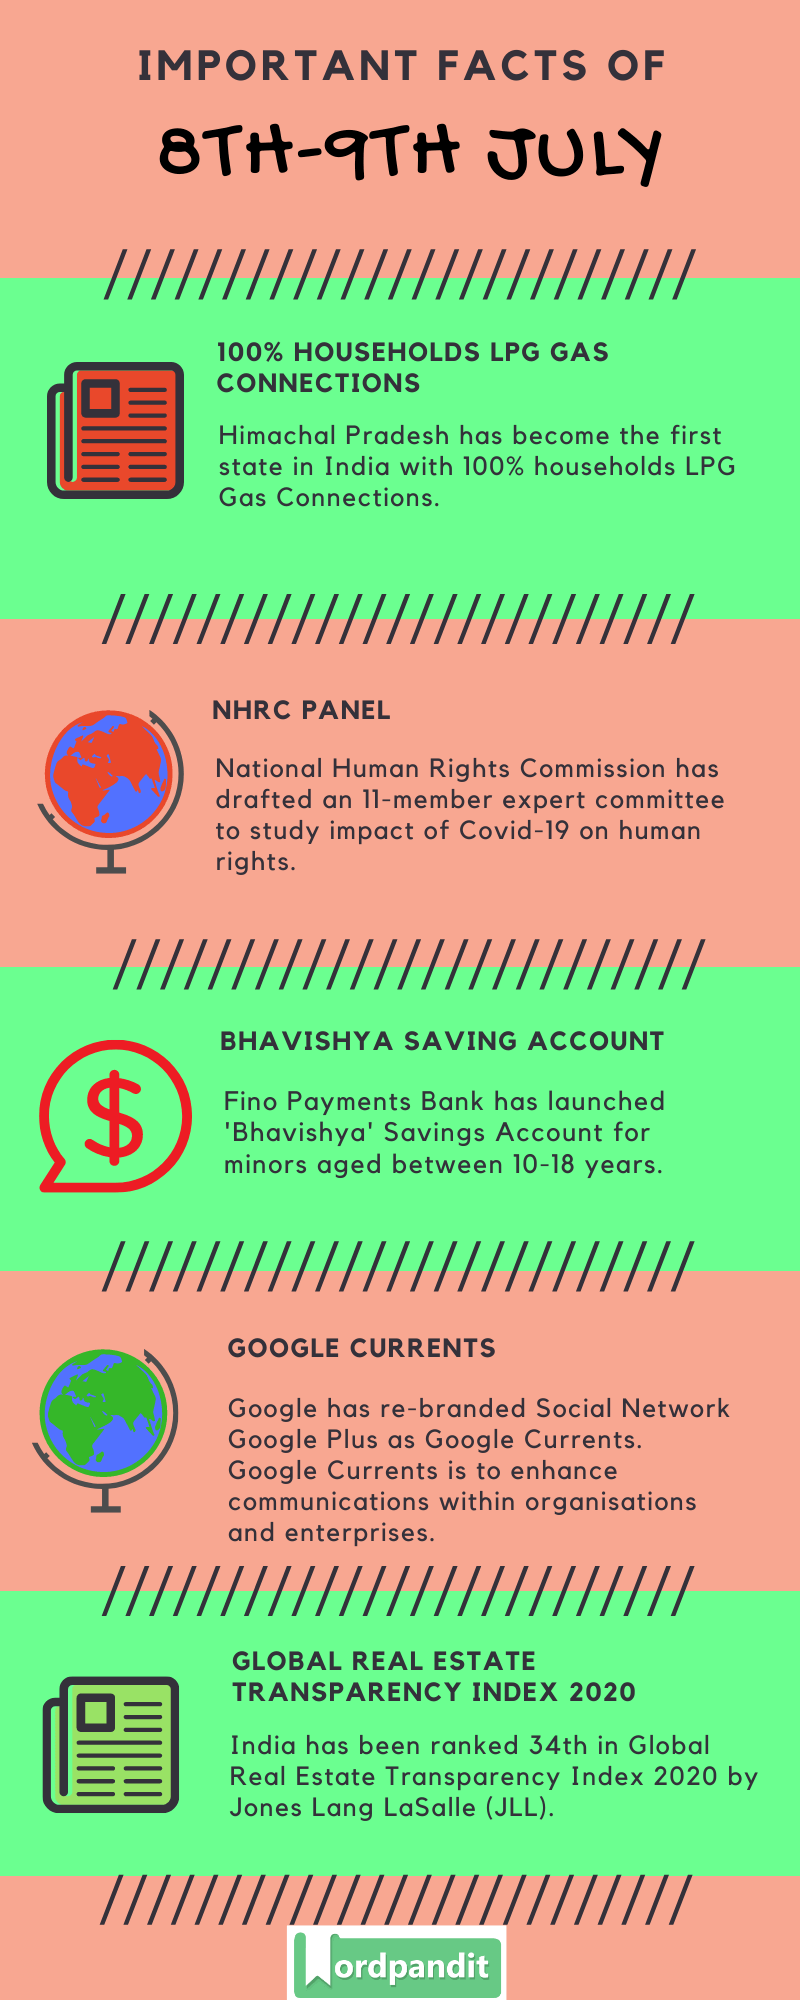 Daily Current Affairs 8th-9th July 2020 Current Affairs Quiz 8th-9th July 2020 Current Affairs Infographic